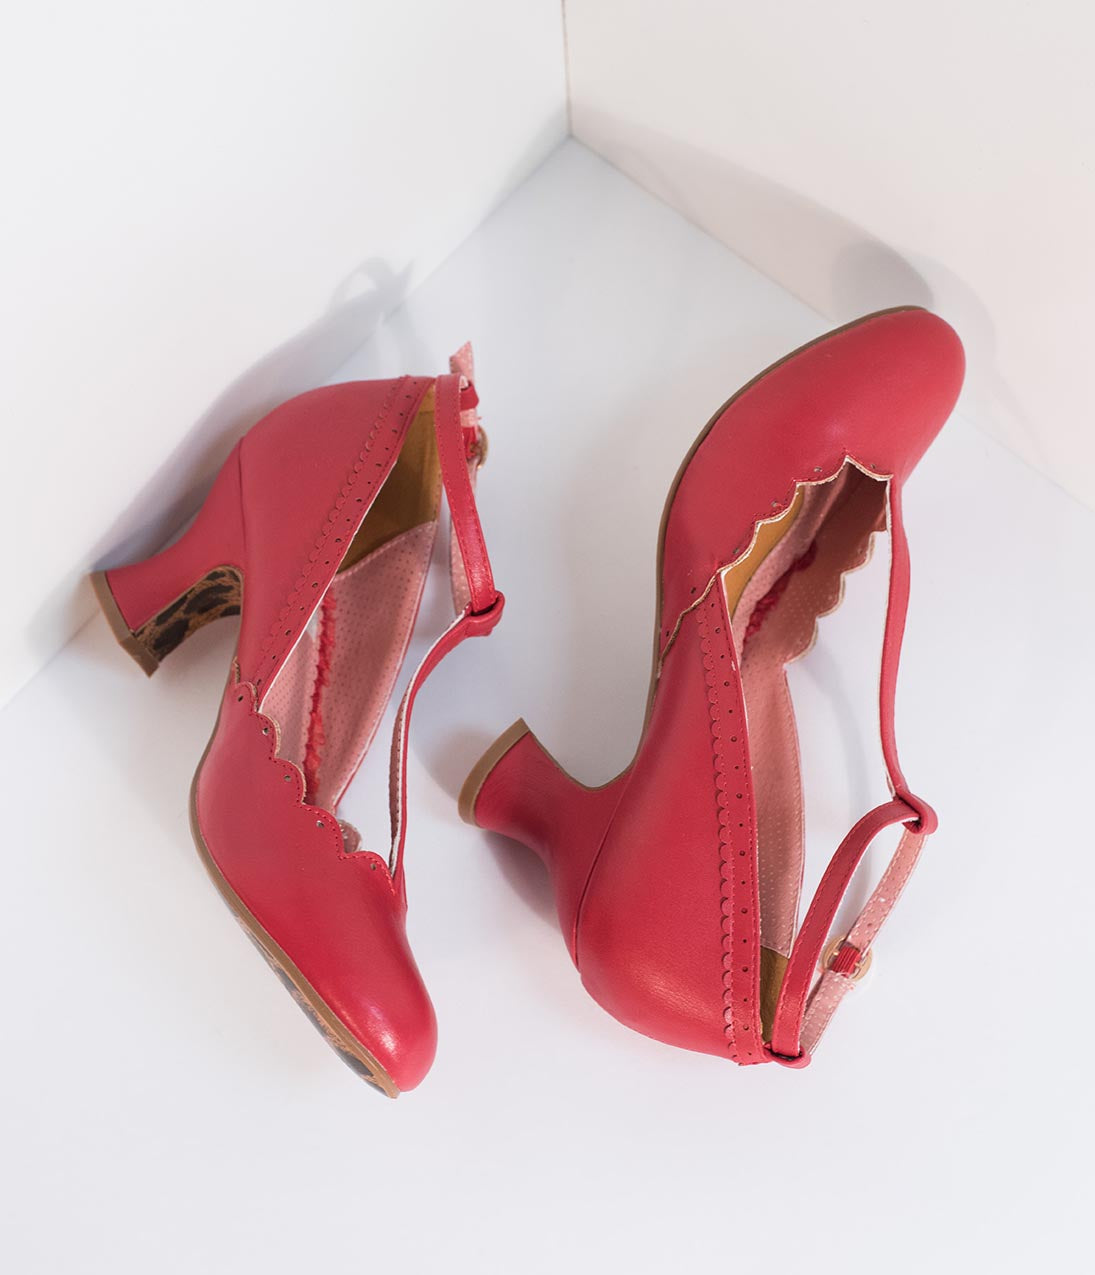 1940s Style Shoes, 40s Shoes Bettie Page 1940S Red Leatherette Penny Scalloped T-Strap Heels $78.00 AT vintagedancer.com